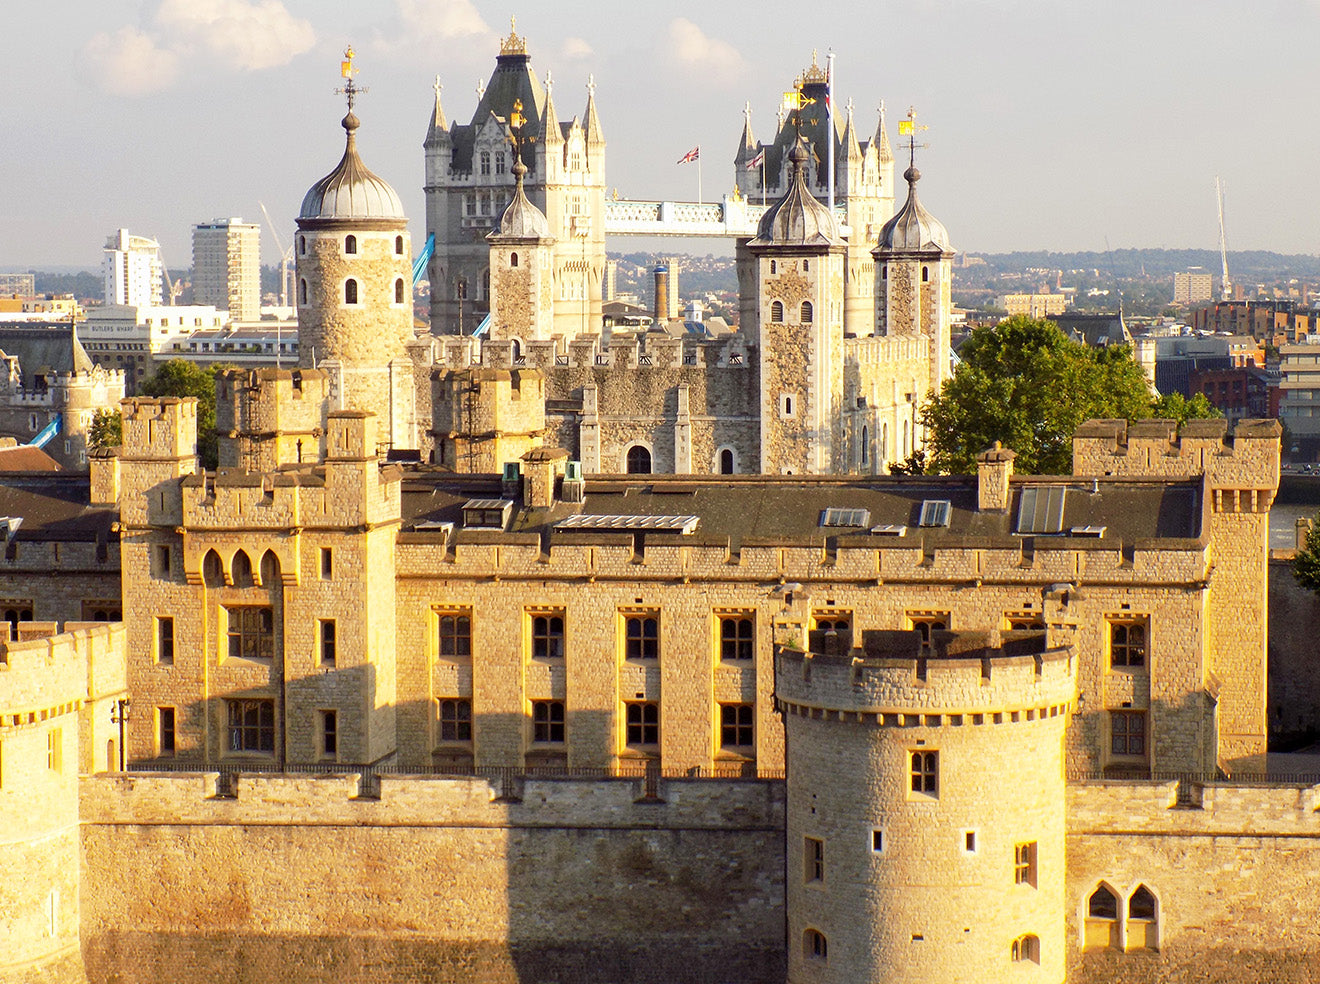 View of the Tower of London from CitizenM Hotel